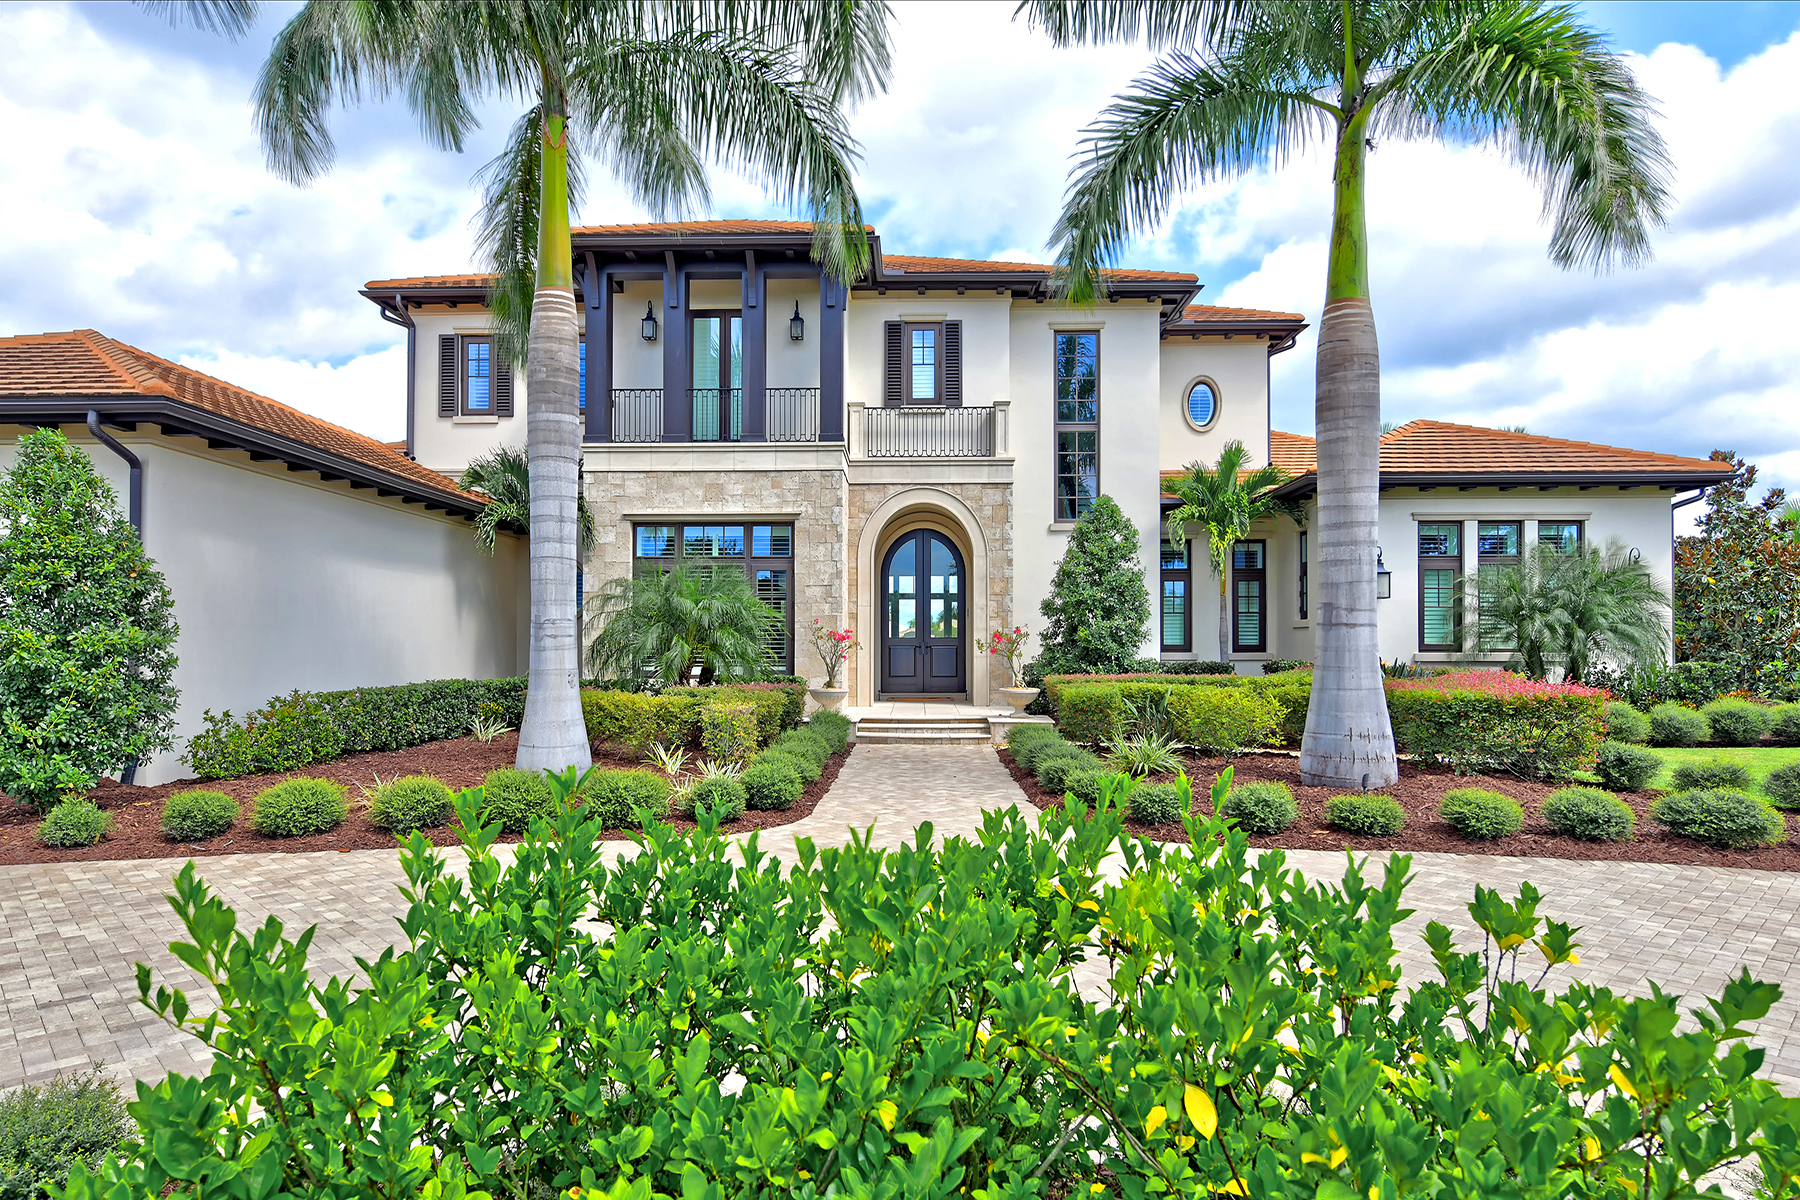 Single Family Homes for Sale at THE LAKE CLUB 16207 Clearlake Ave Lakewood Ranch, Florida 34202 United States